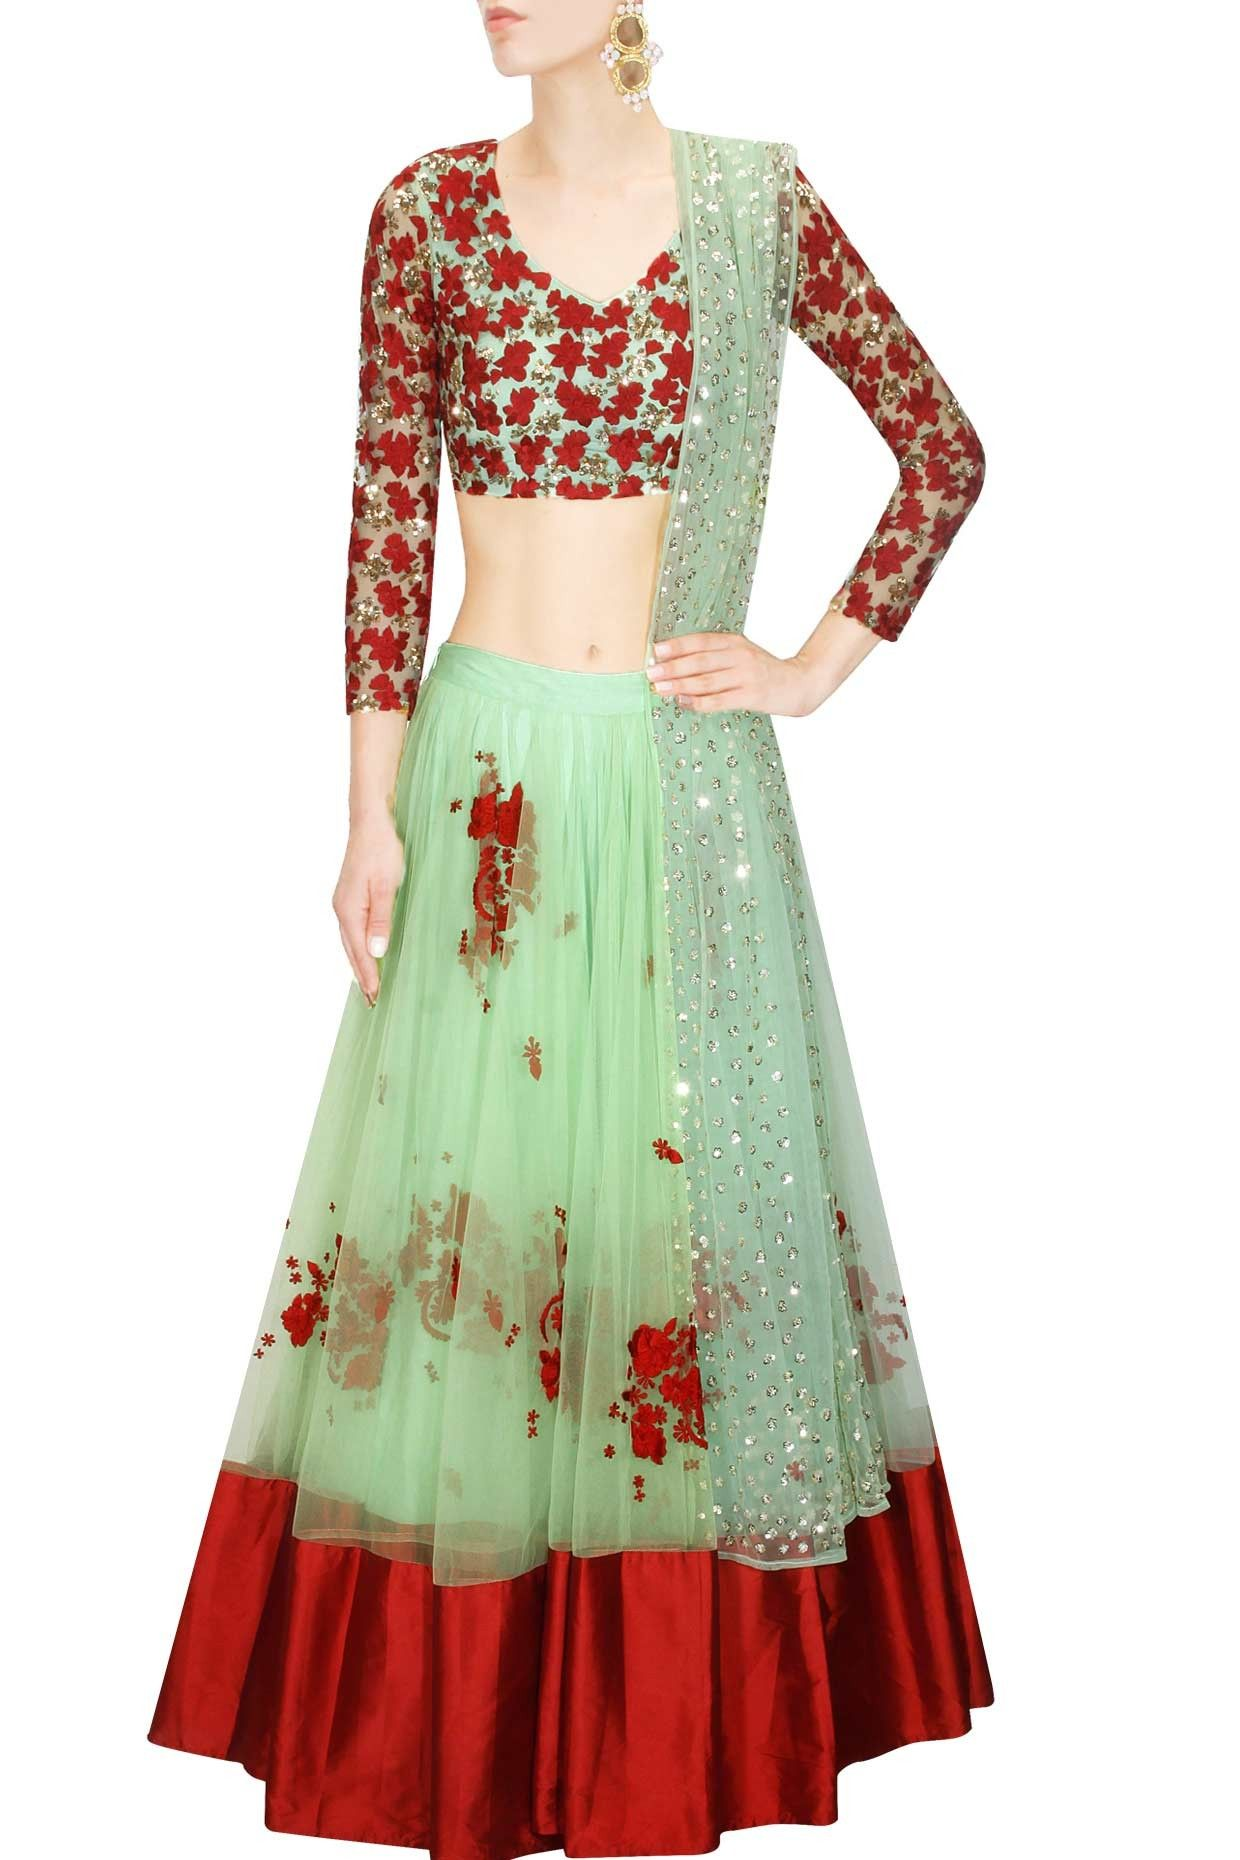 48d2eae3355c6 Mint green and red floral thread and sequins embroidered lehenga set  available only at Pernia s Pop Up Shop.